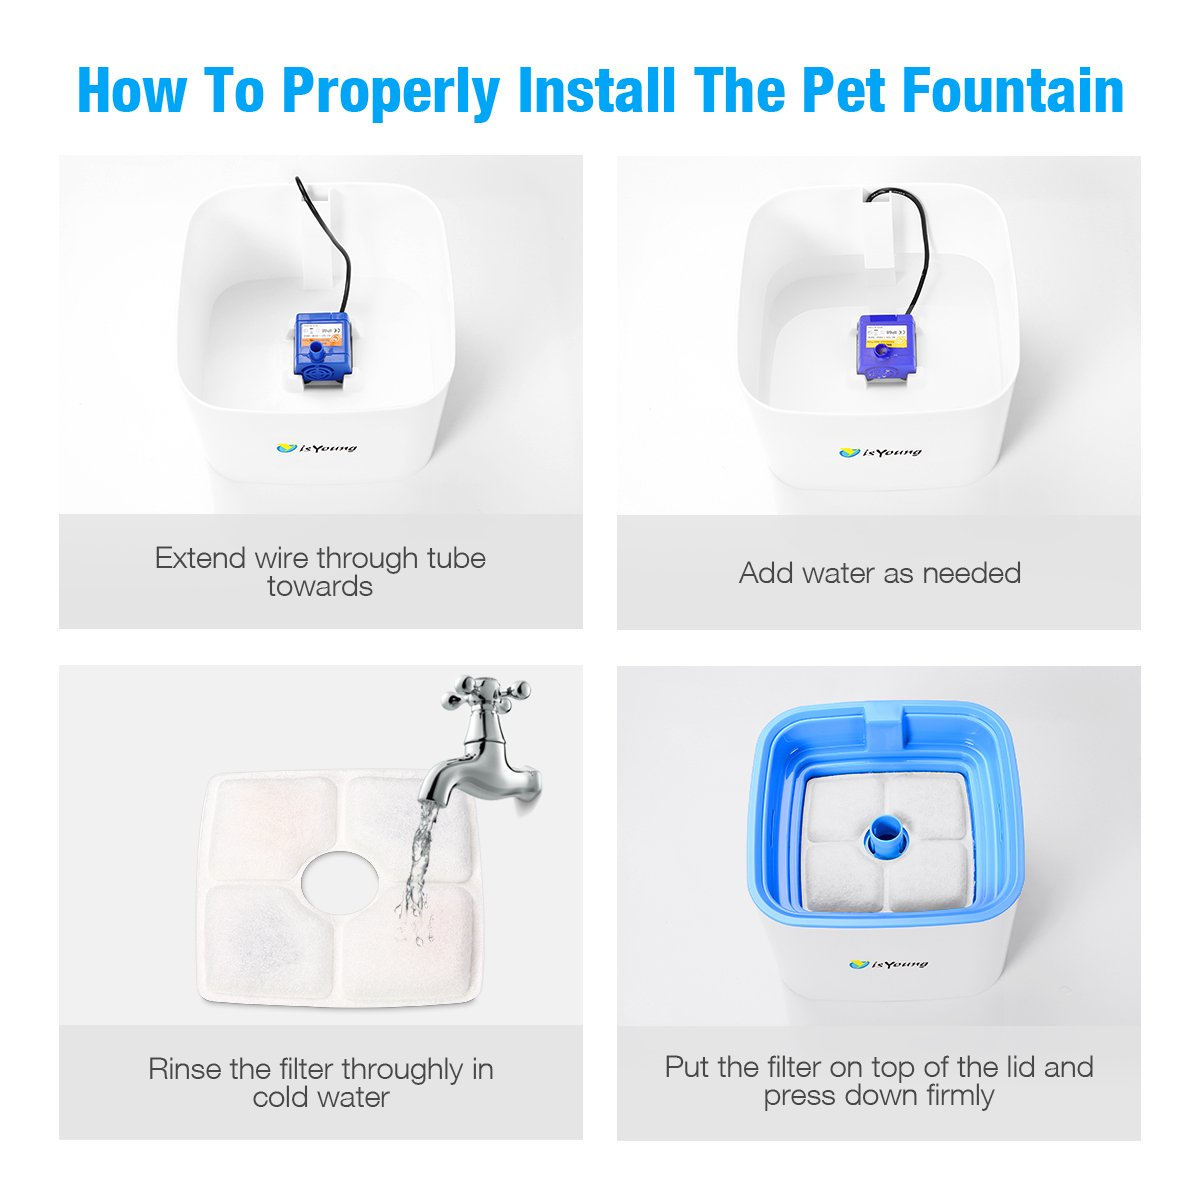 isYoung Pet Water Fountain, Upgraded 2.5L Cat/Dog Pet Drinking Fountain Automatic Pet Water Dispenser with 3 Different Water Flow Settings and Beautiful Flower Design, Super Quiet and Hygienic